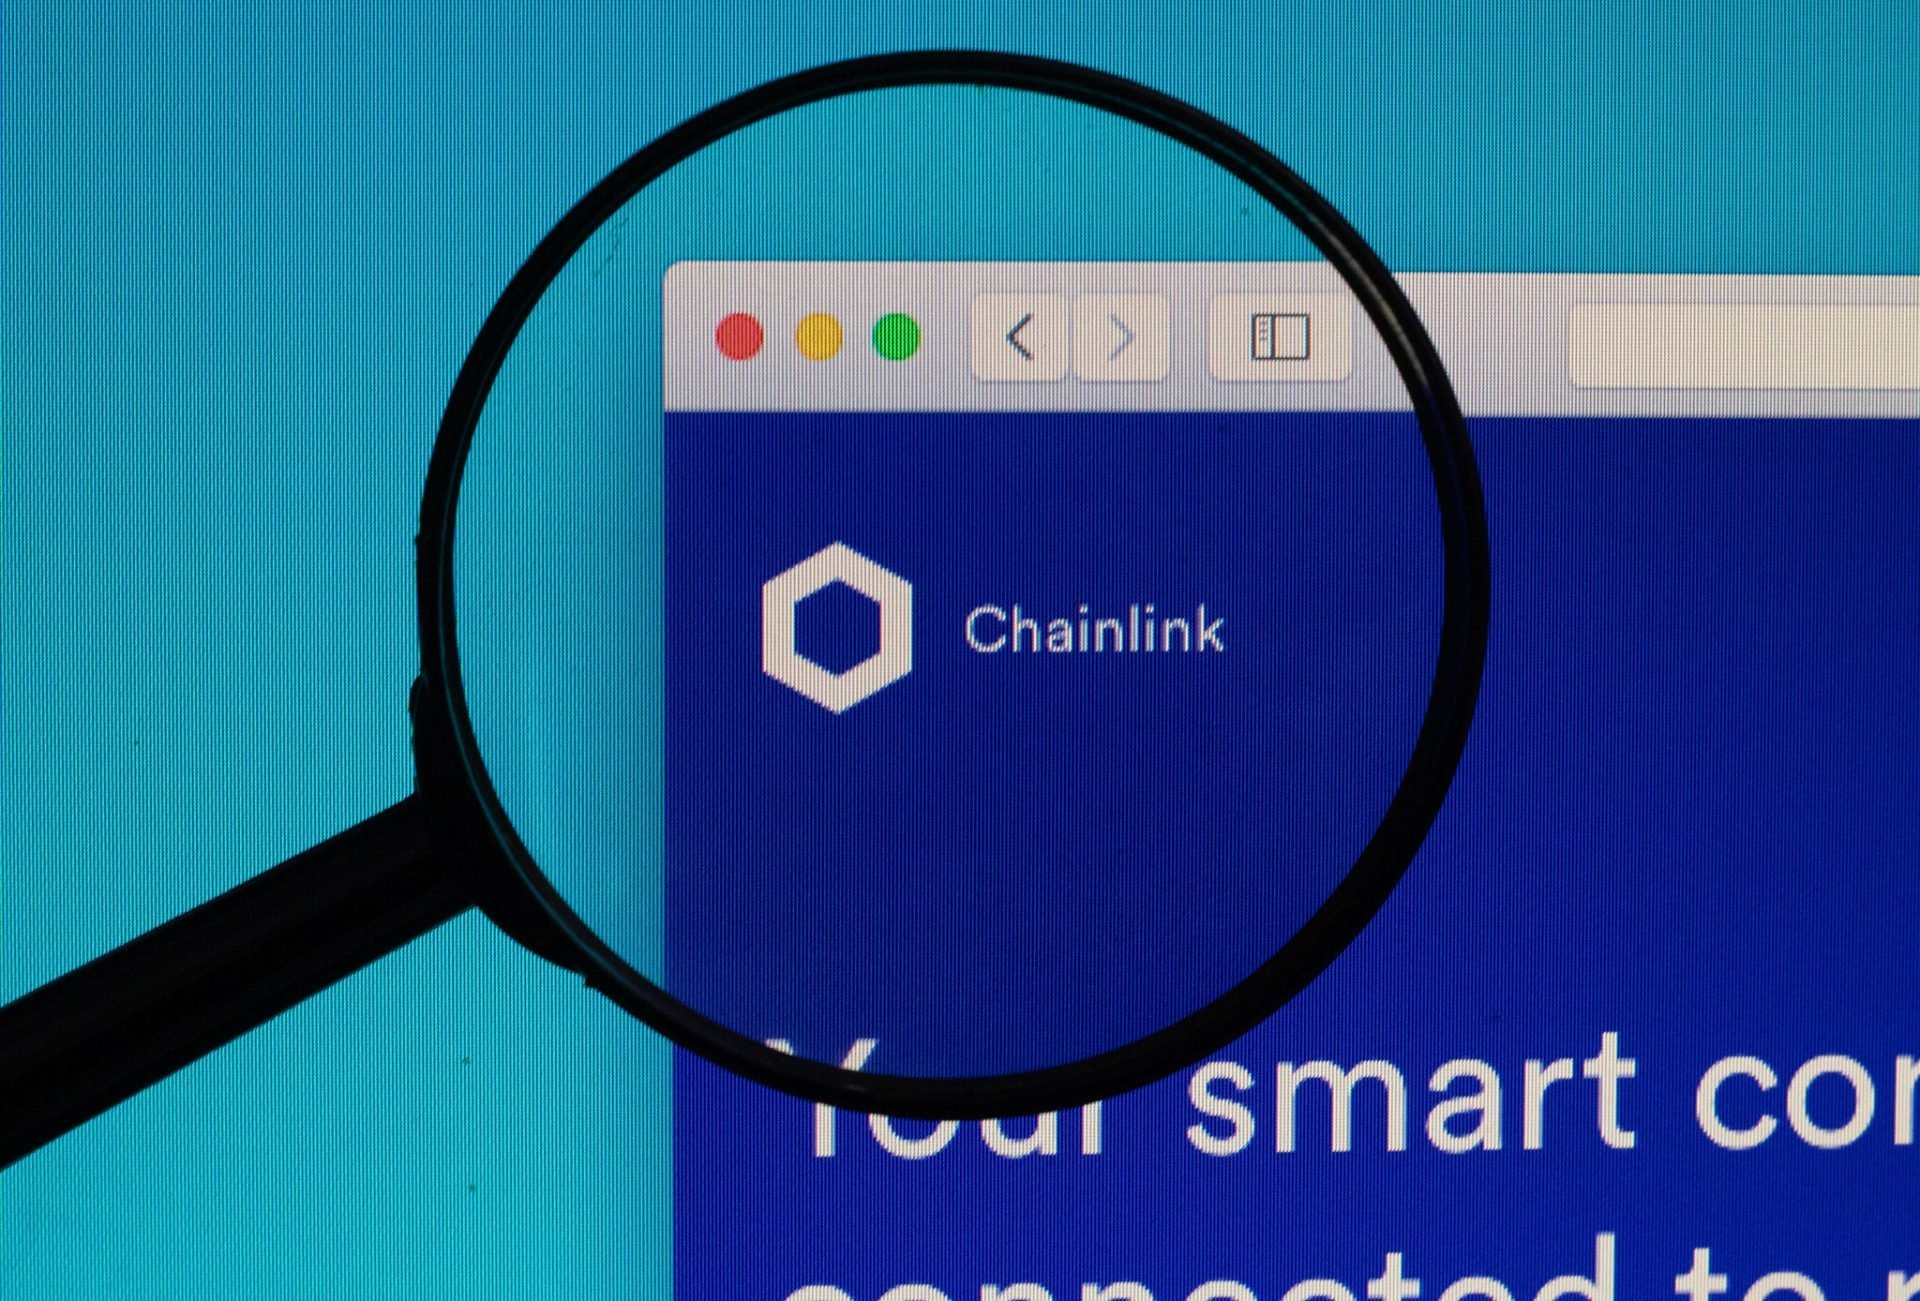 Chainlink Enters Into Binance Collaboration; LINK Up 3.5% 15